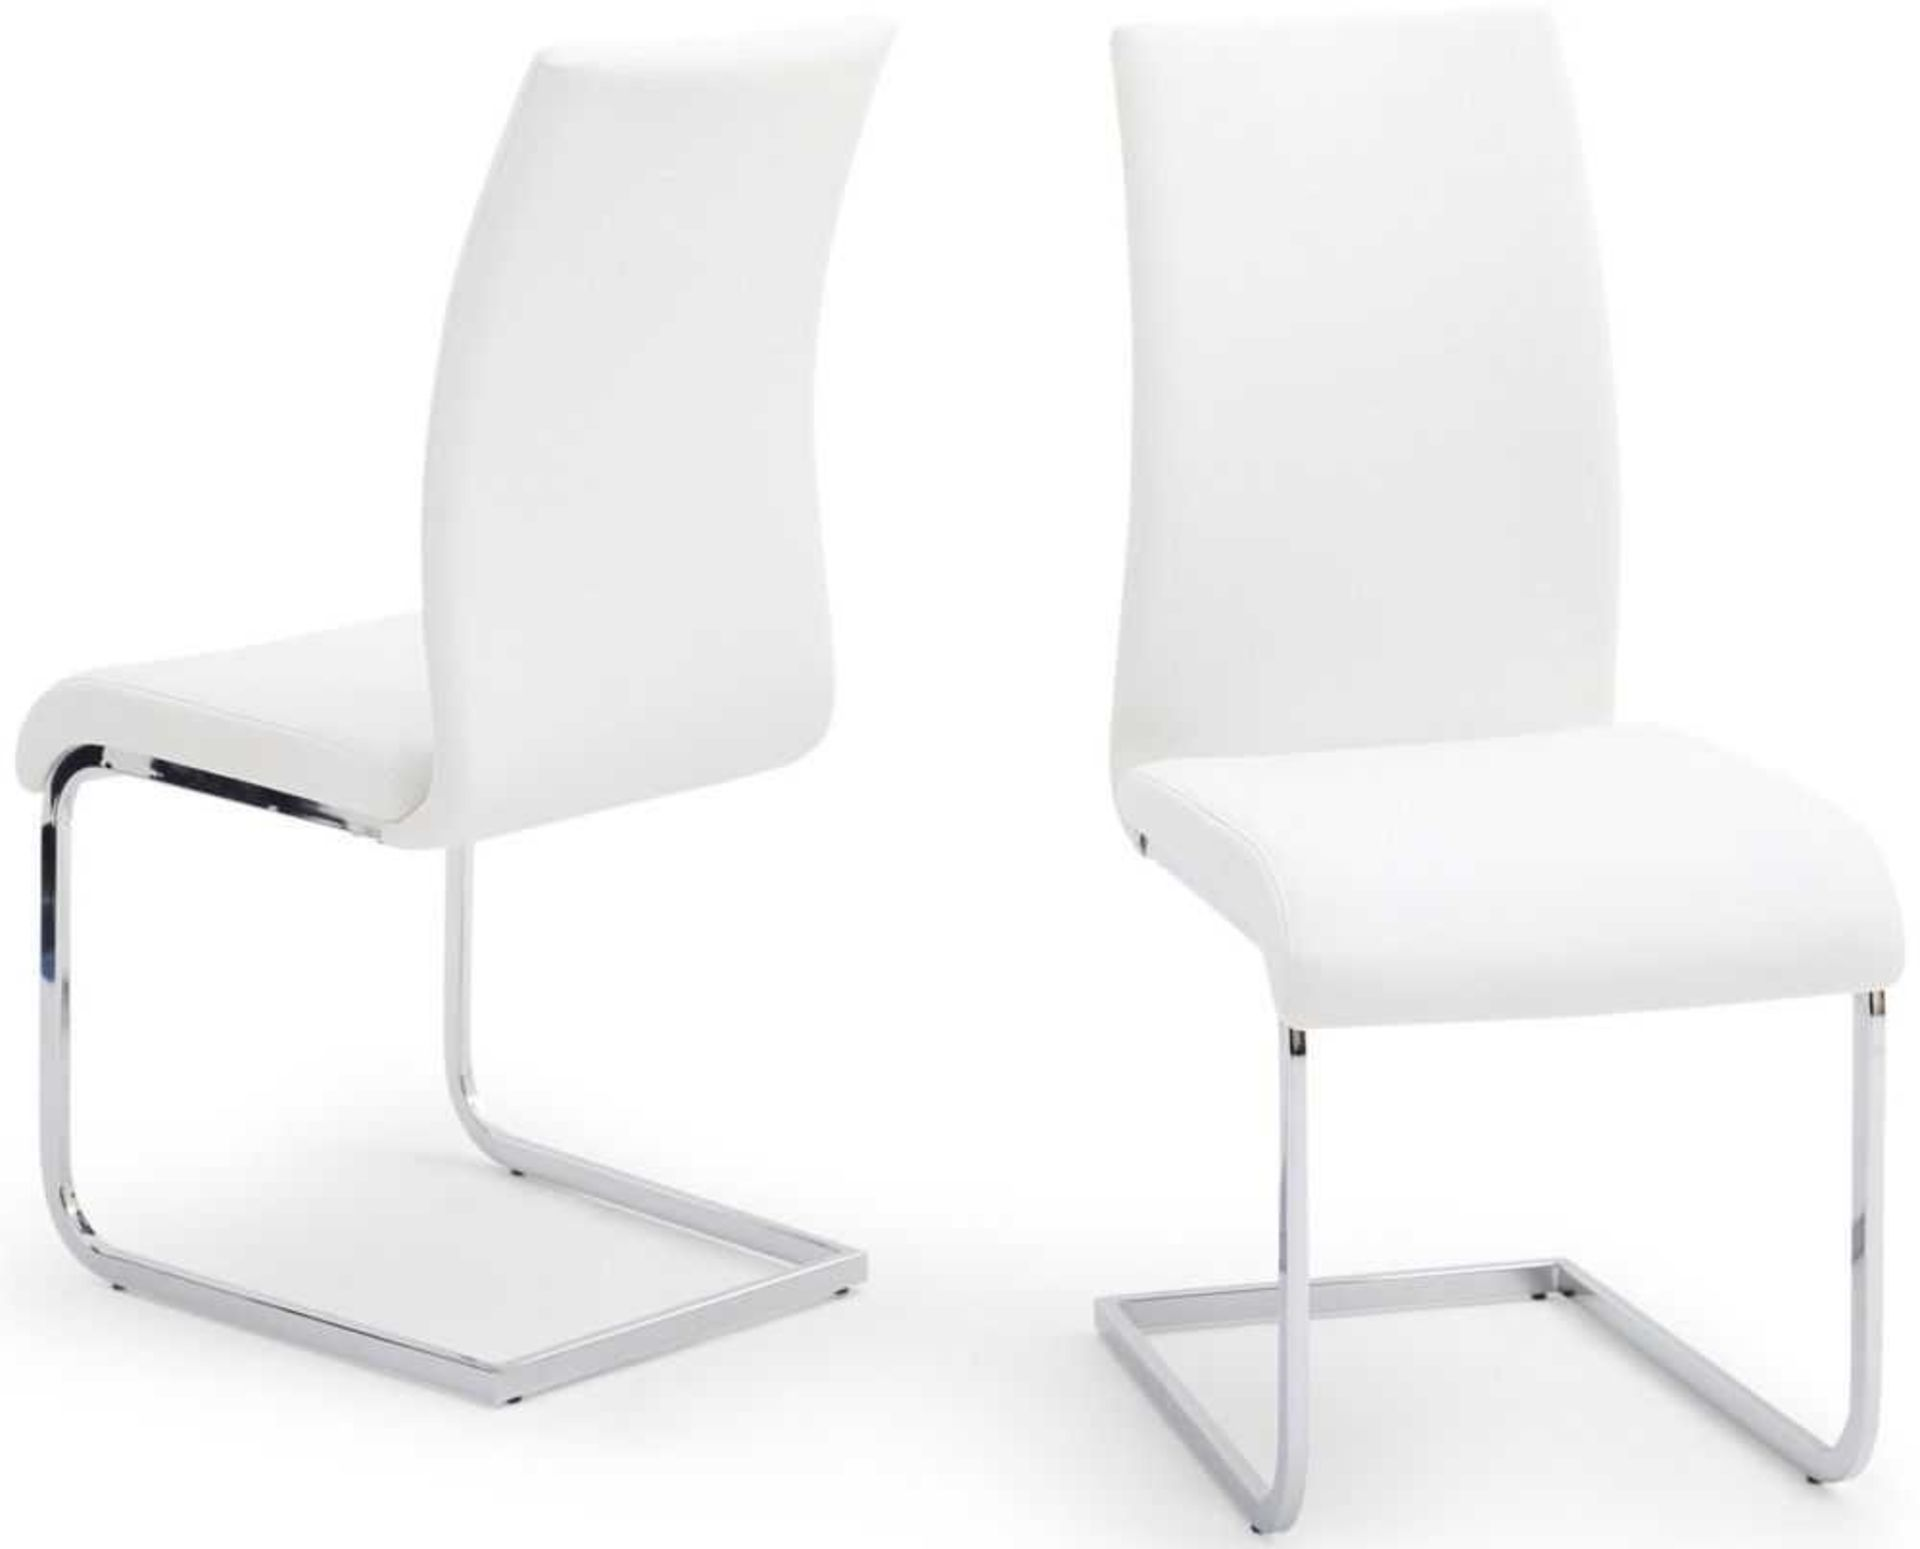 RRP £200 - Boxed 2 'Lotus' White Dining Chairs (Appraisals Available On Request) (Pictures For